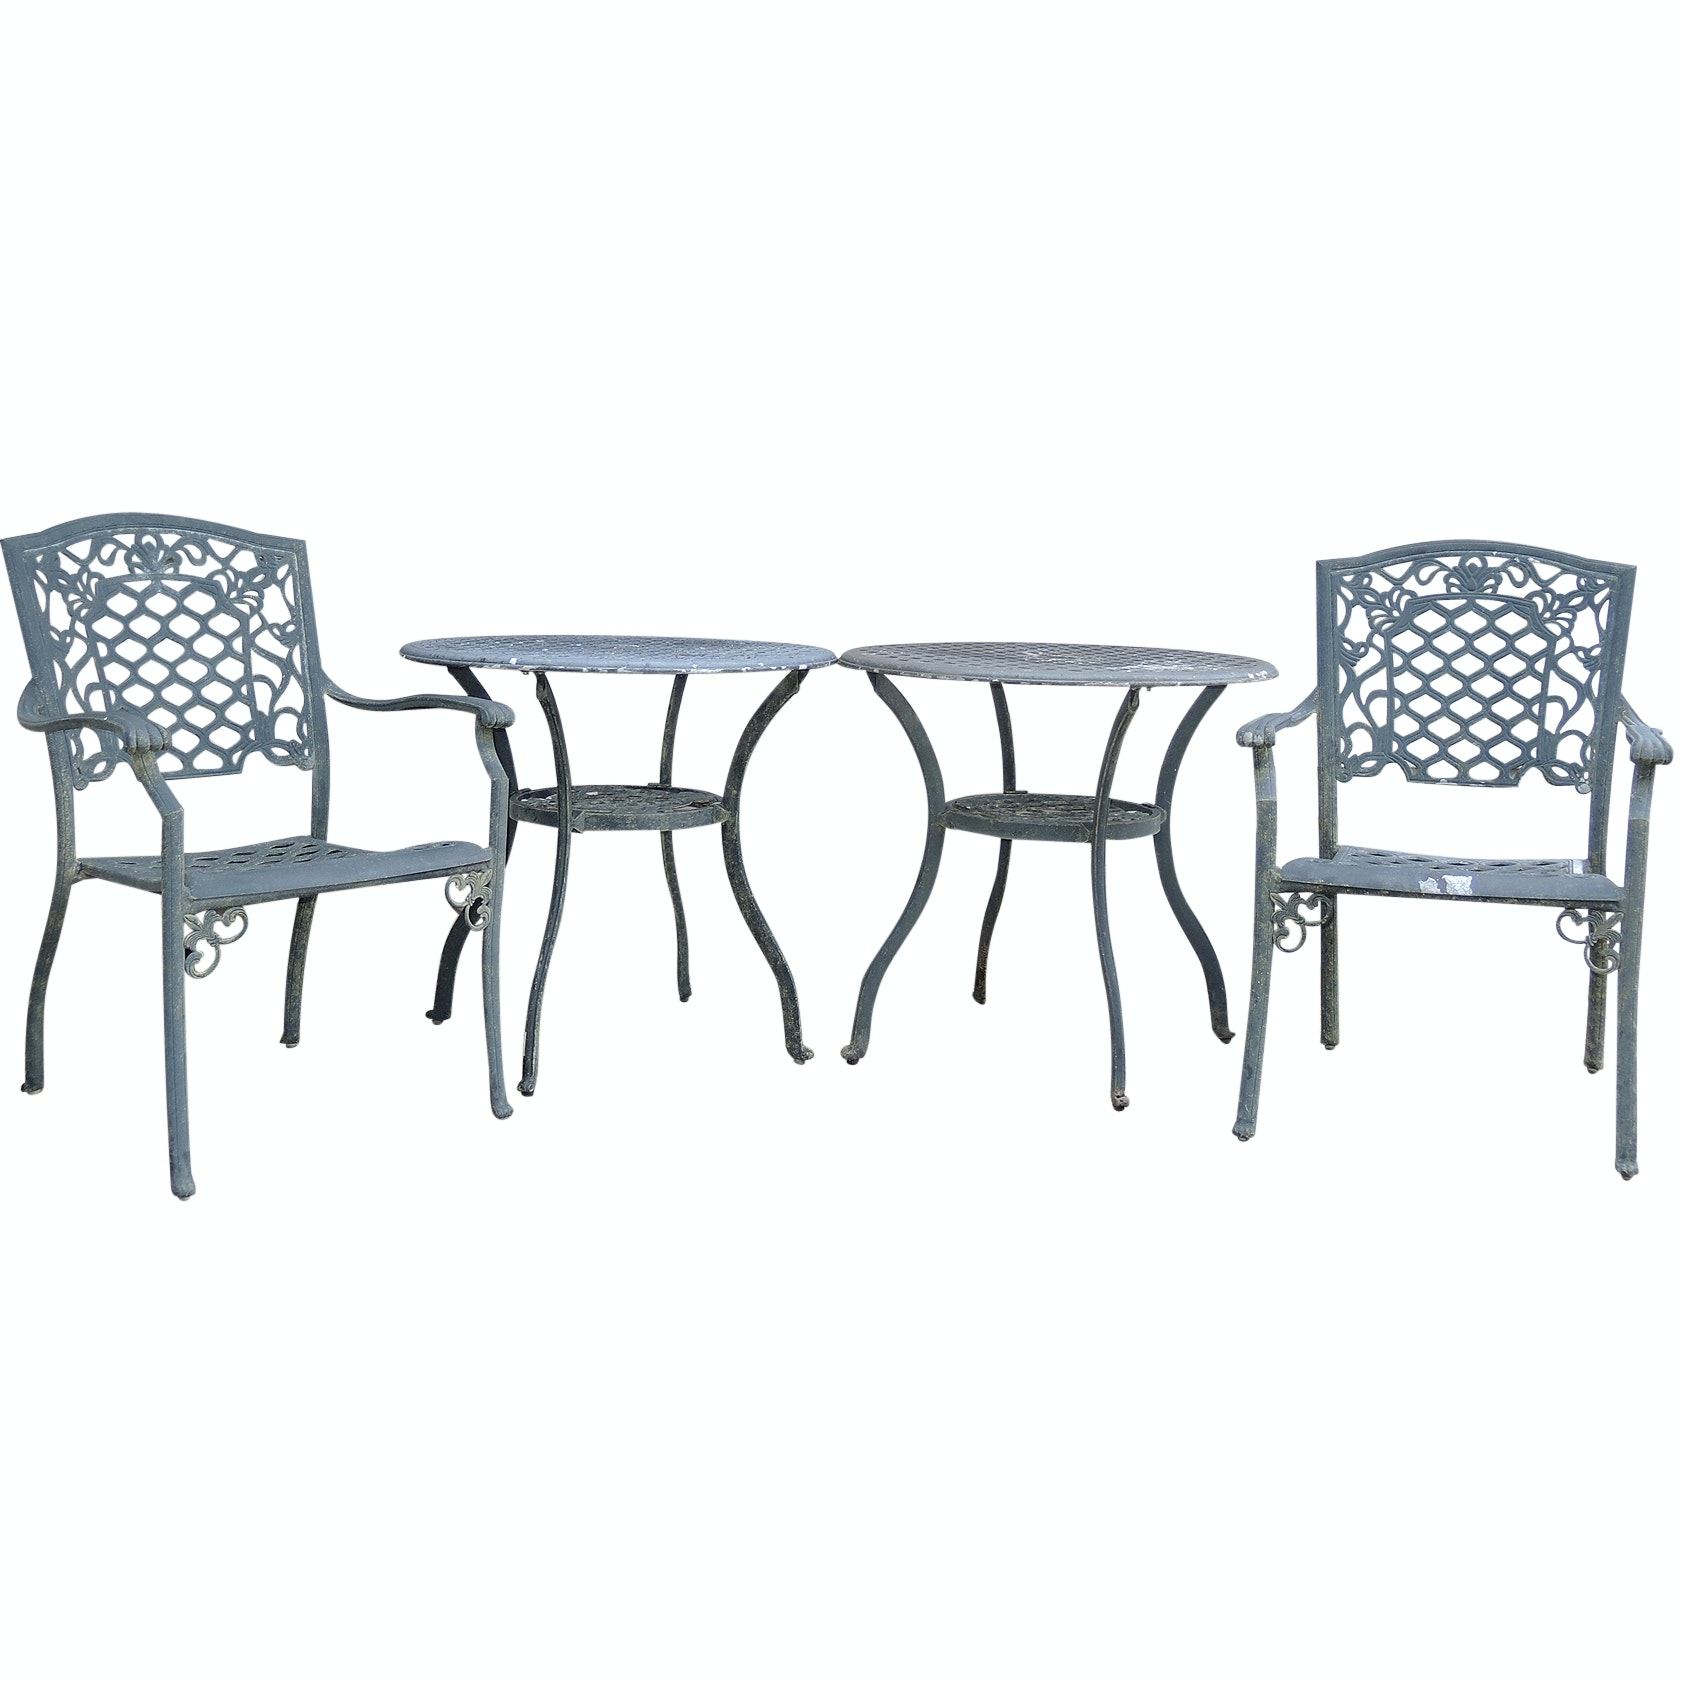 Bistro Tables and Chairs